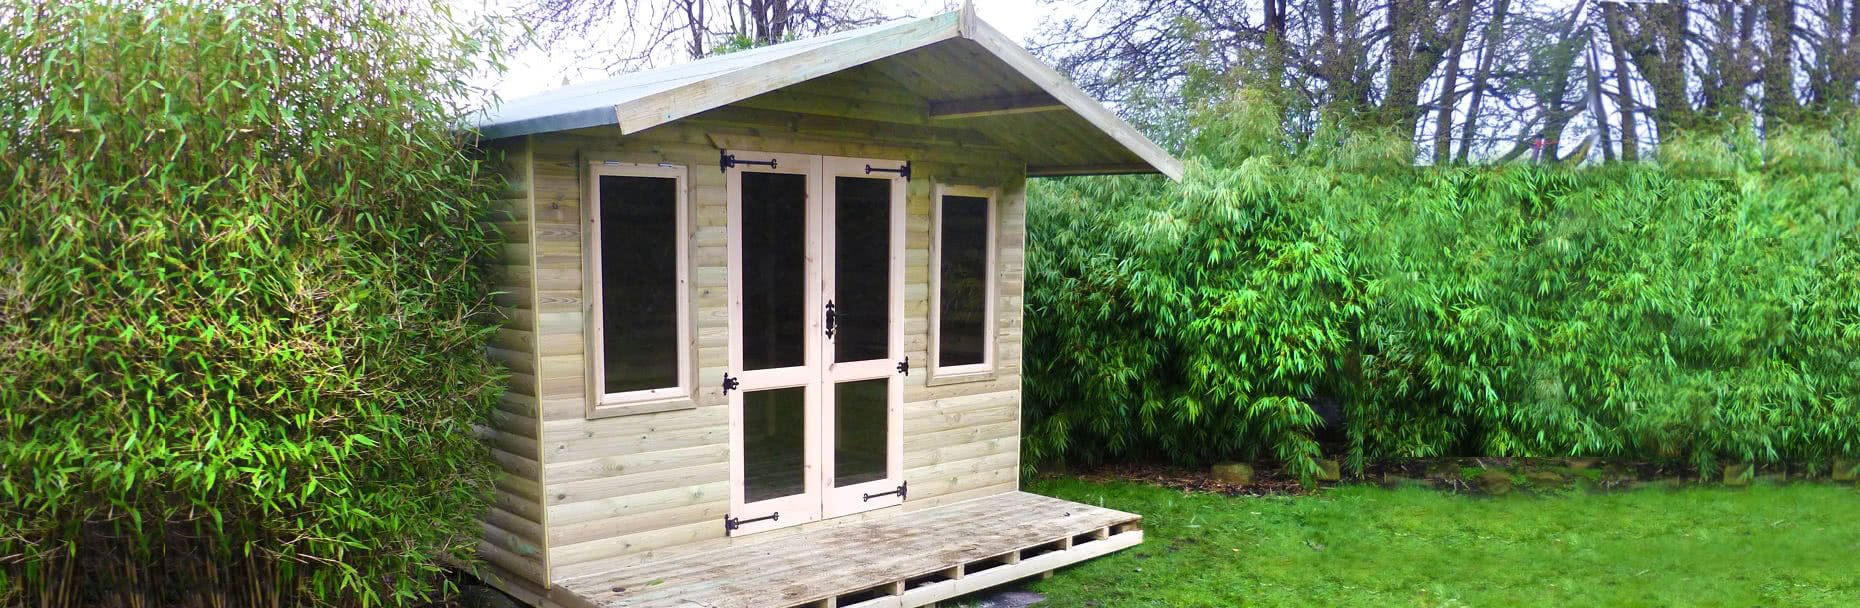 original at sheds being solutions is direct customers size builder pixels affordable finalized building